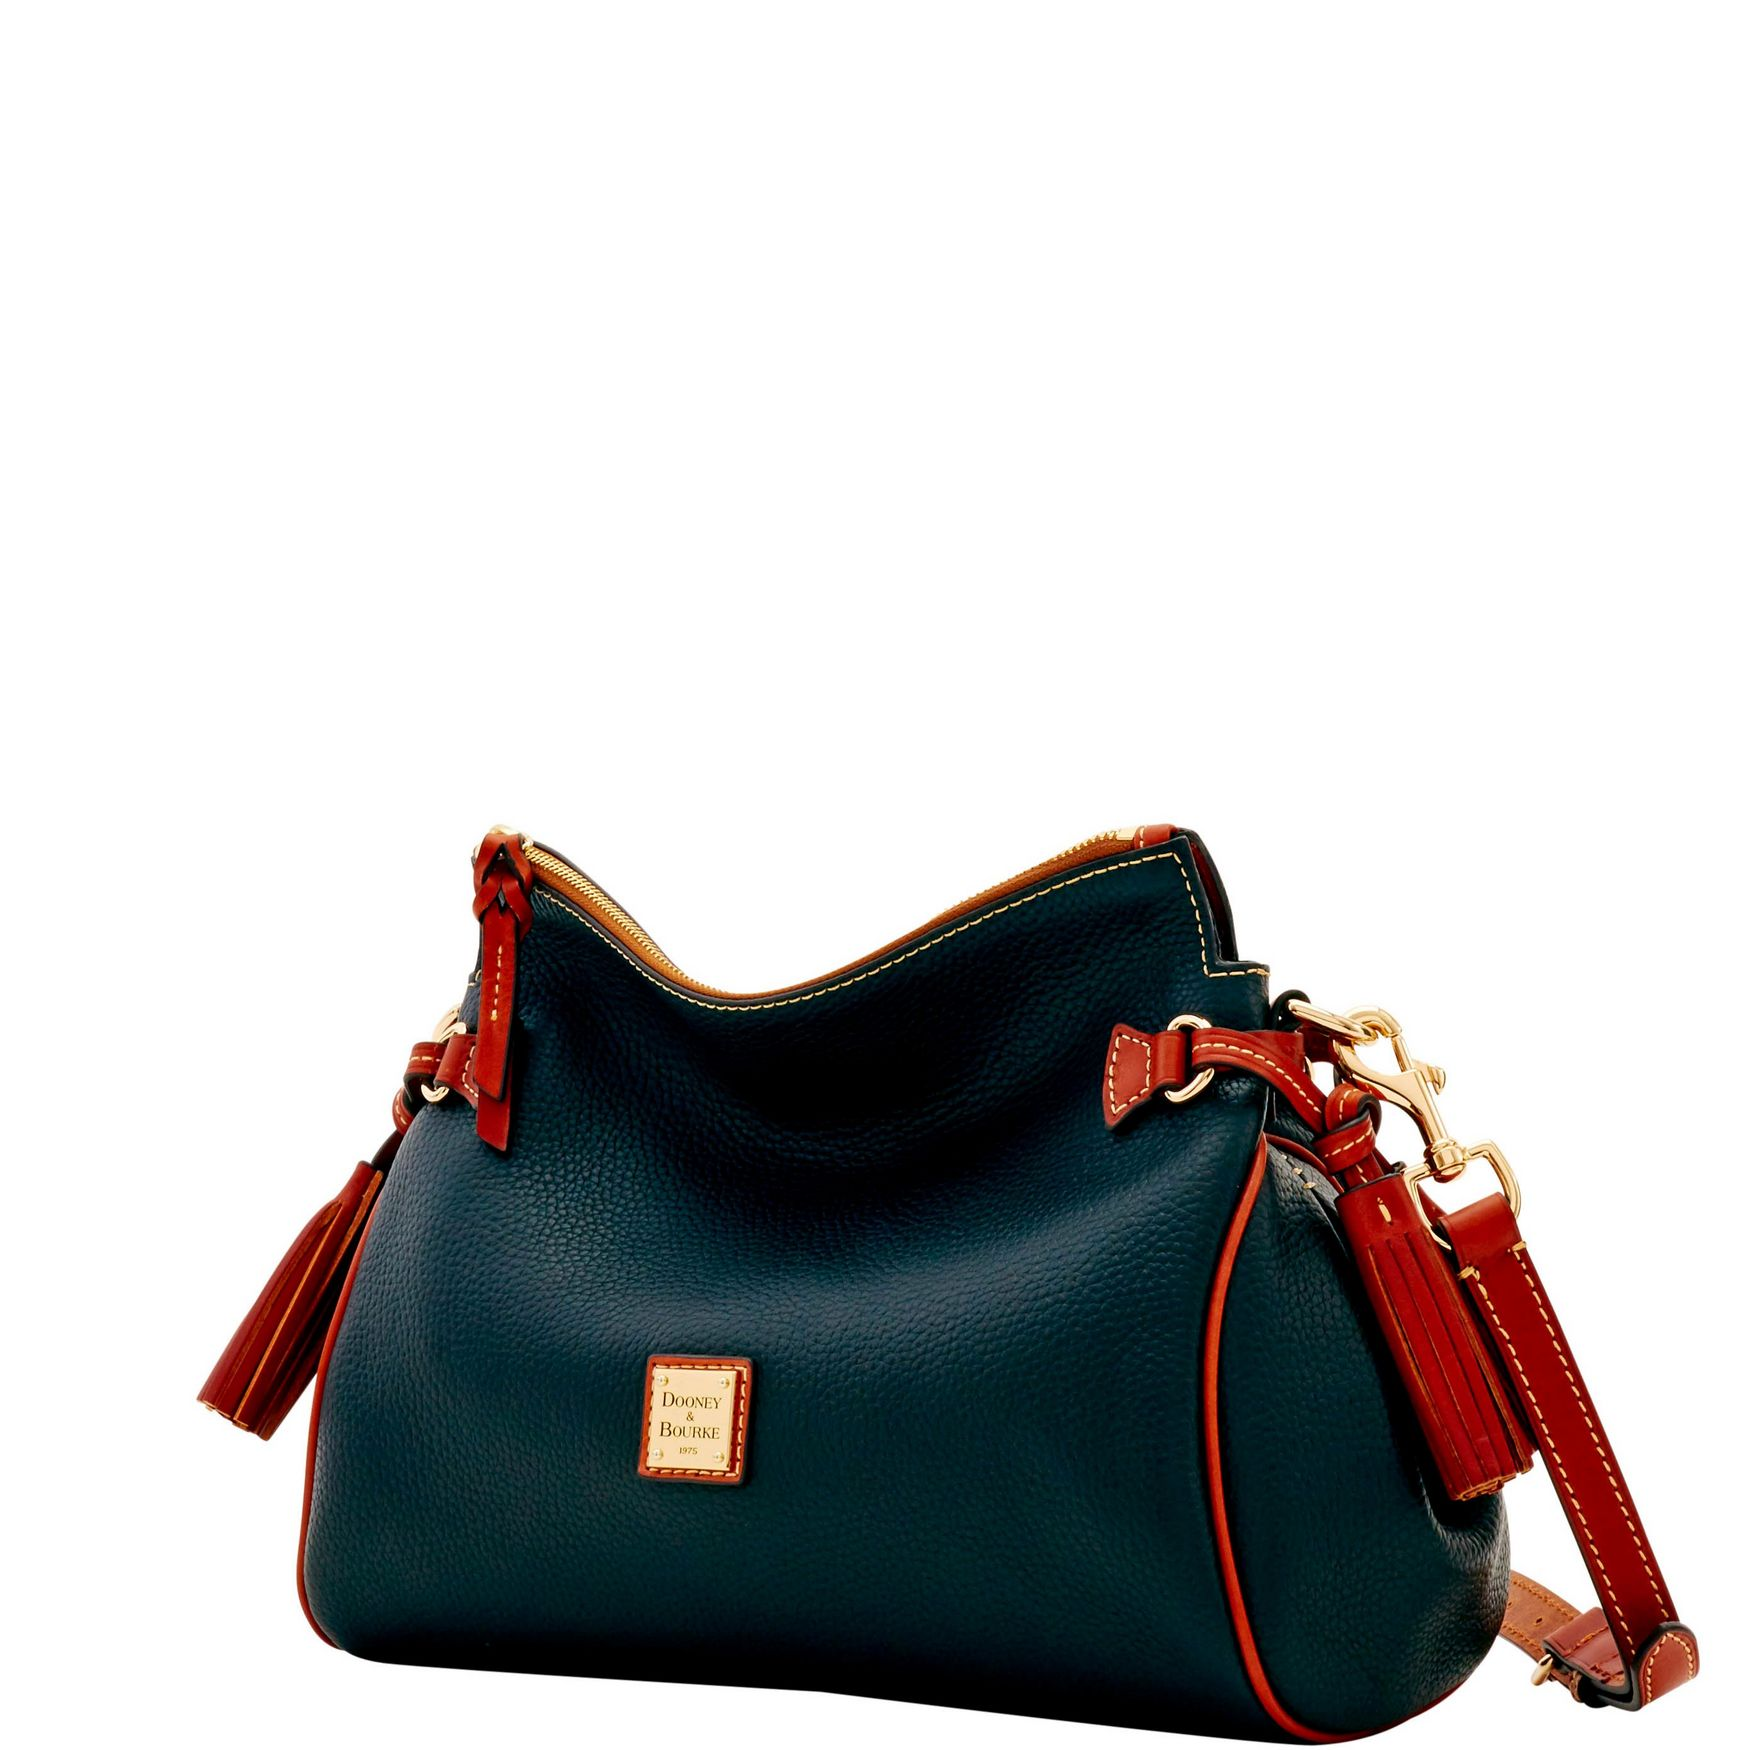 Dooney-amp-Bourke-Pebble-Grain-Medium-Zip-Crossbody-Shoulder-Bag thumbnail 4